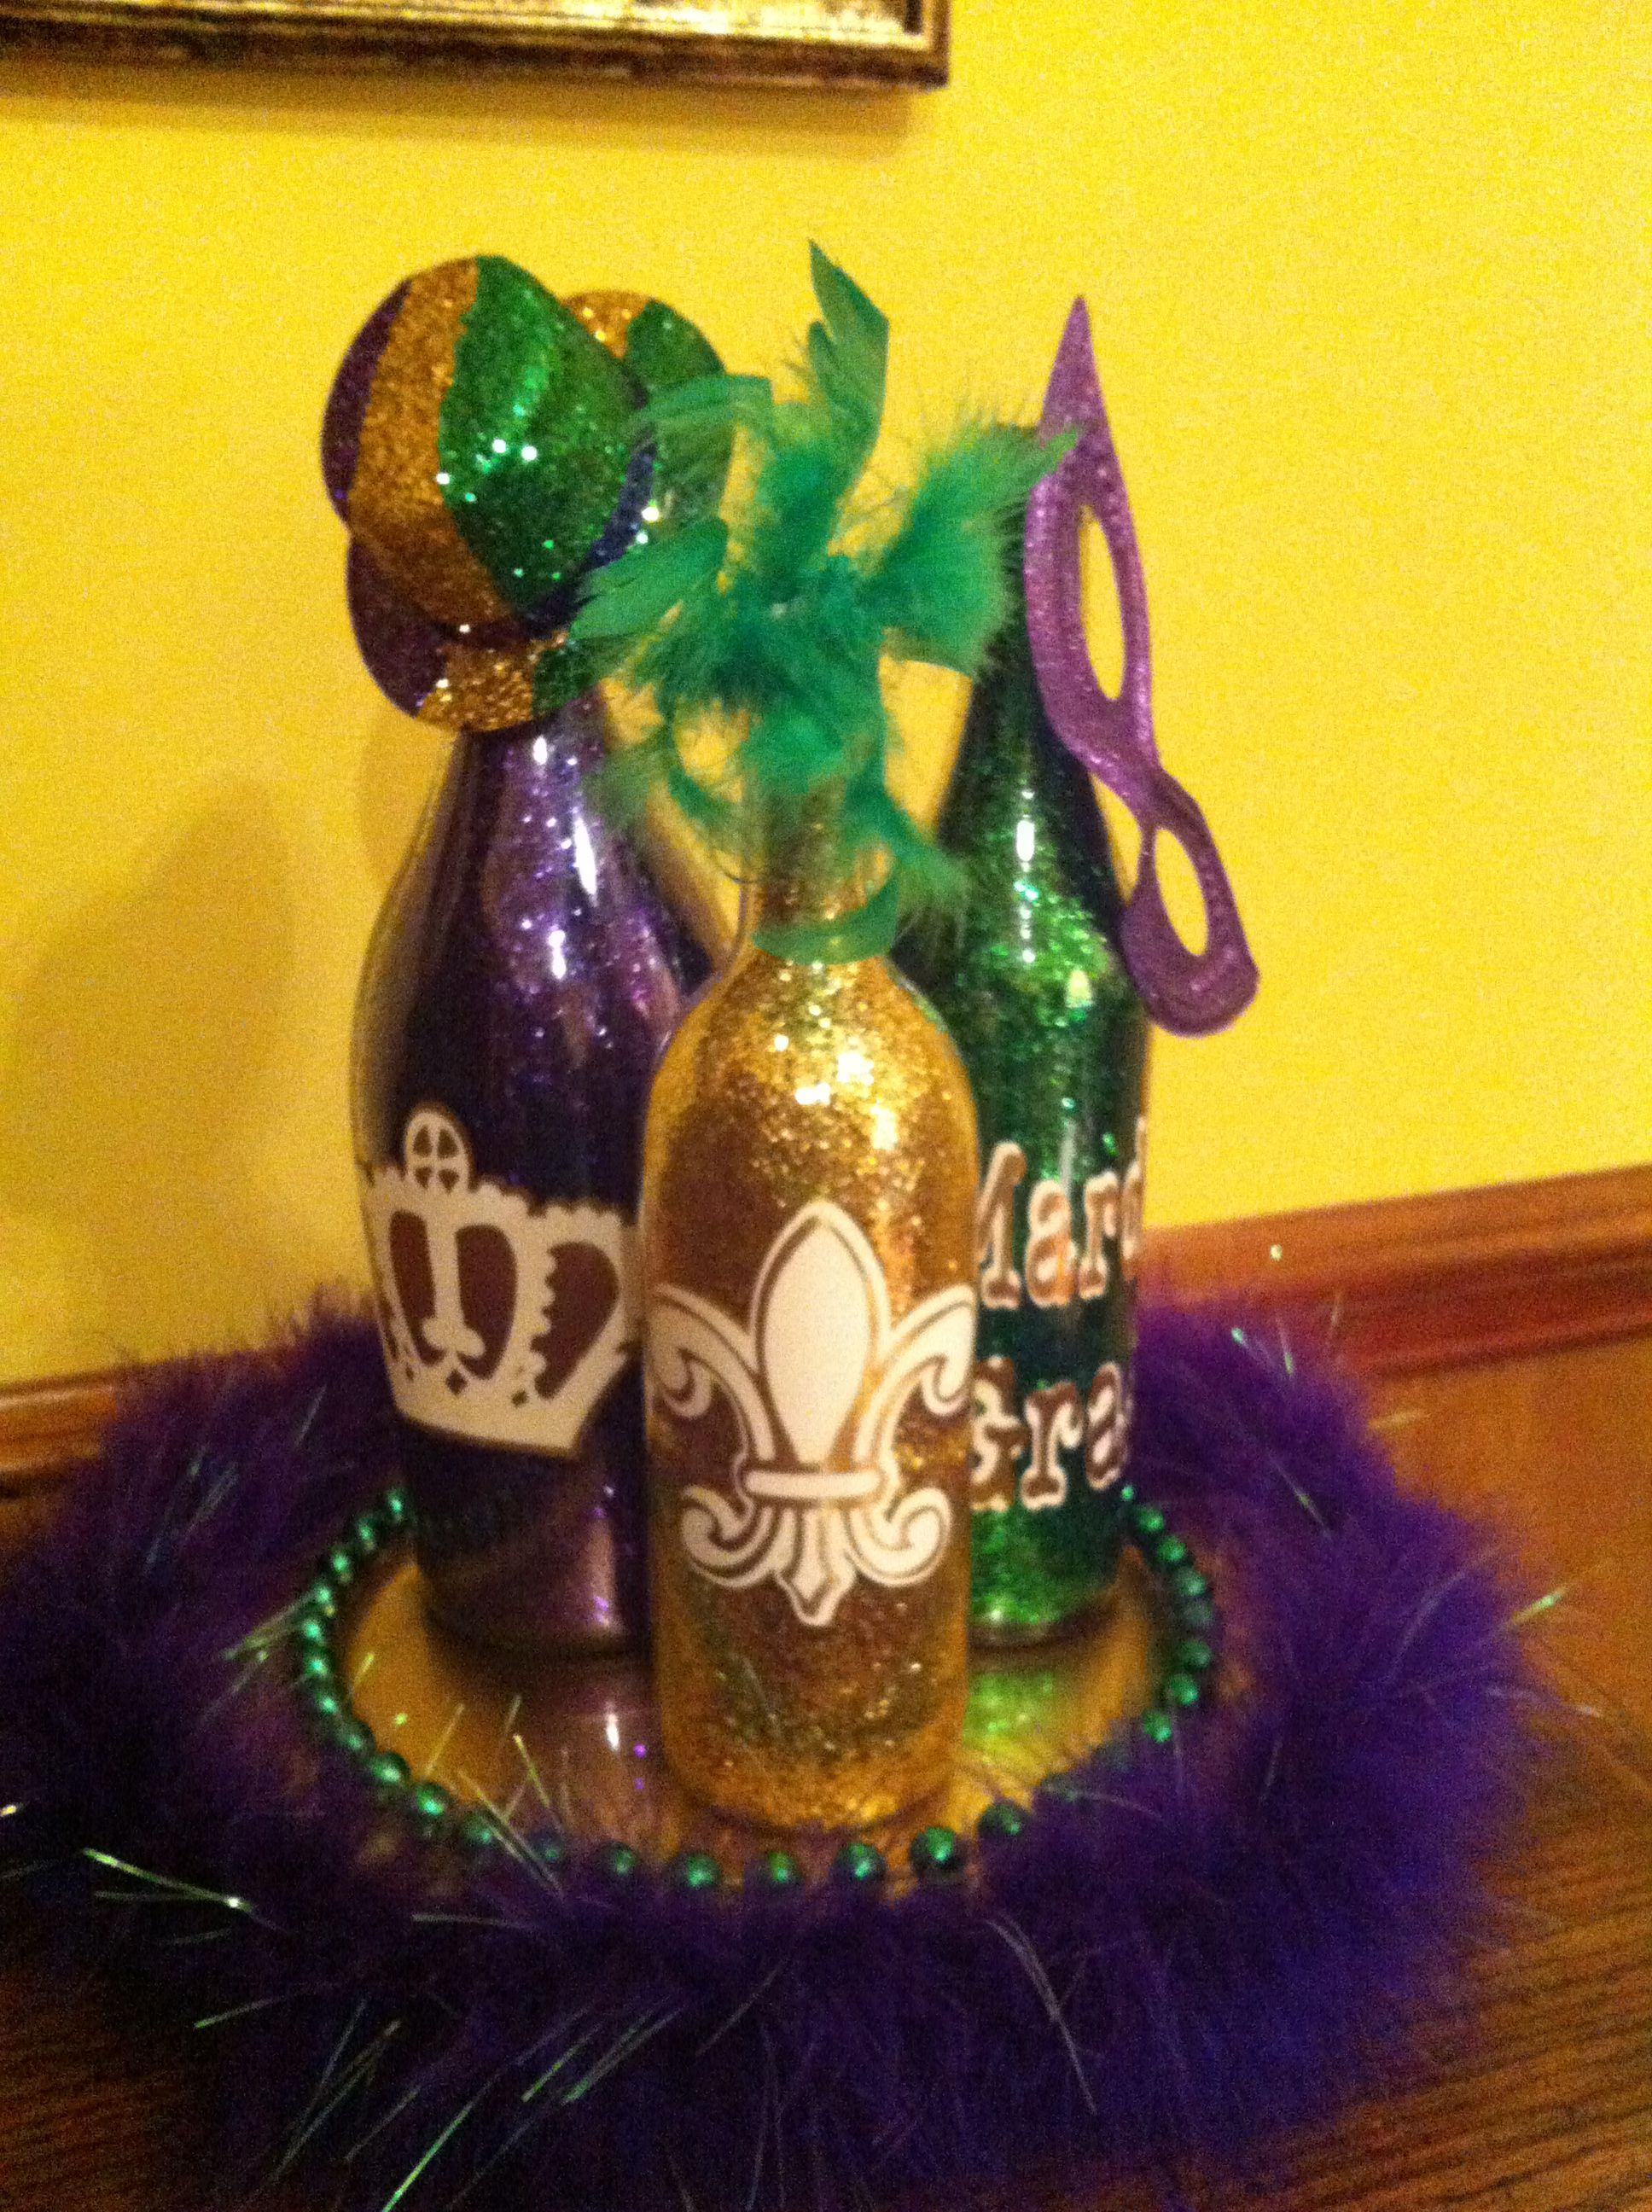 Mardi Gras wine bottles with glitter on the inside & purple boa on charger